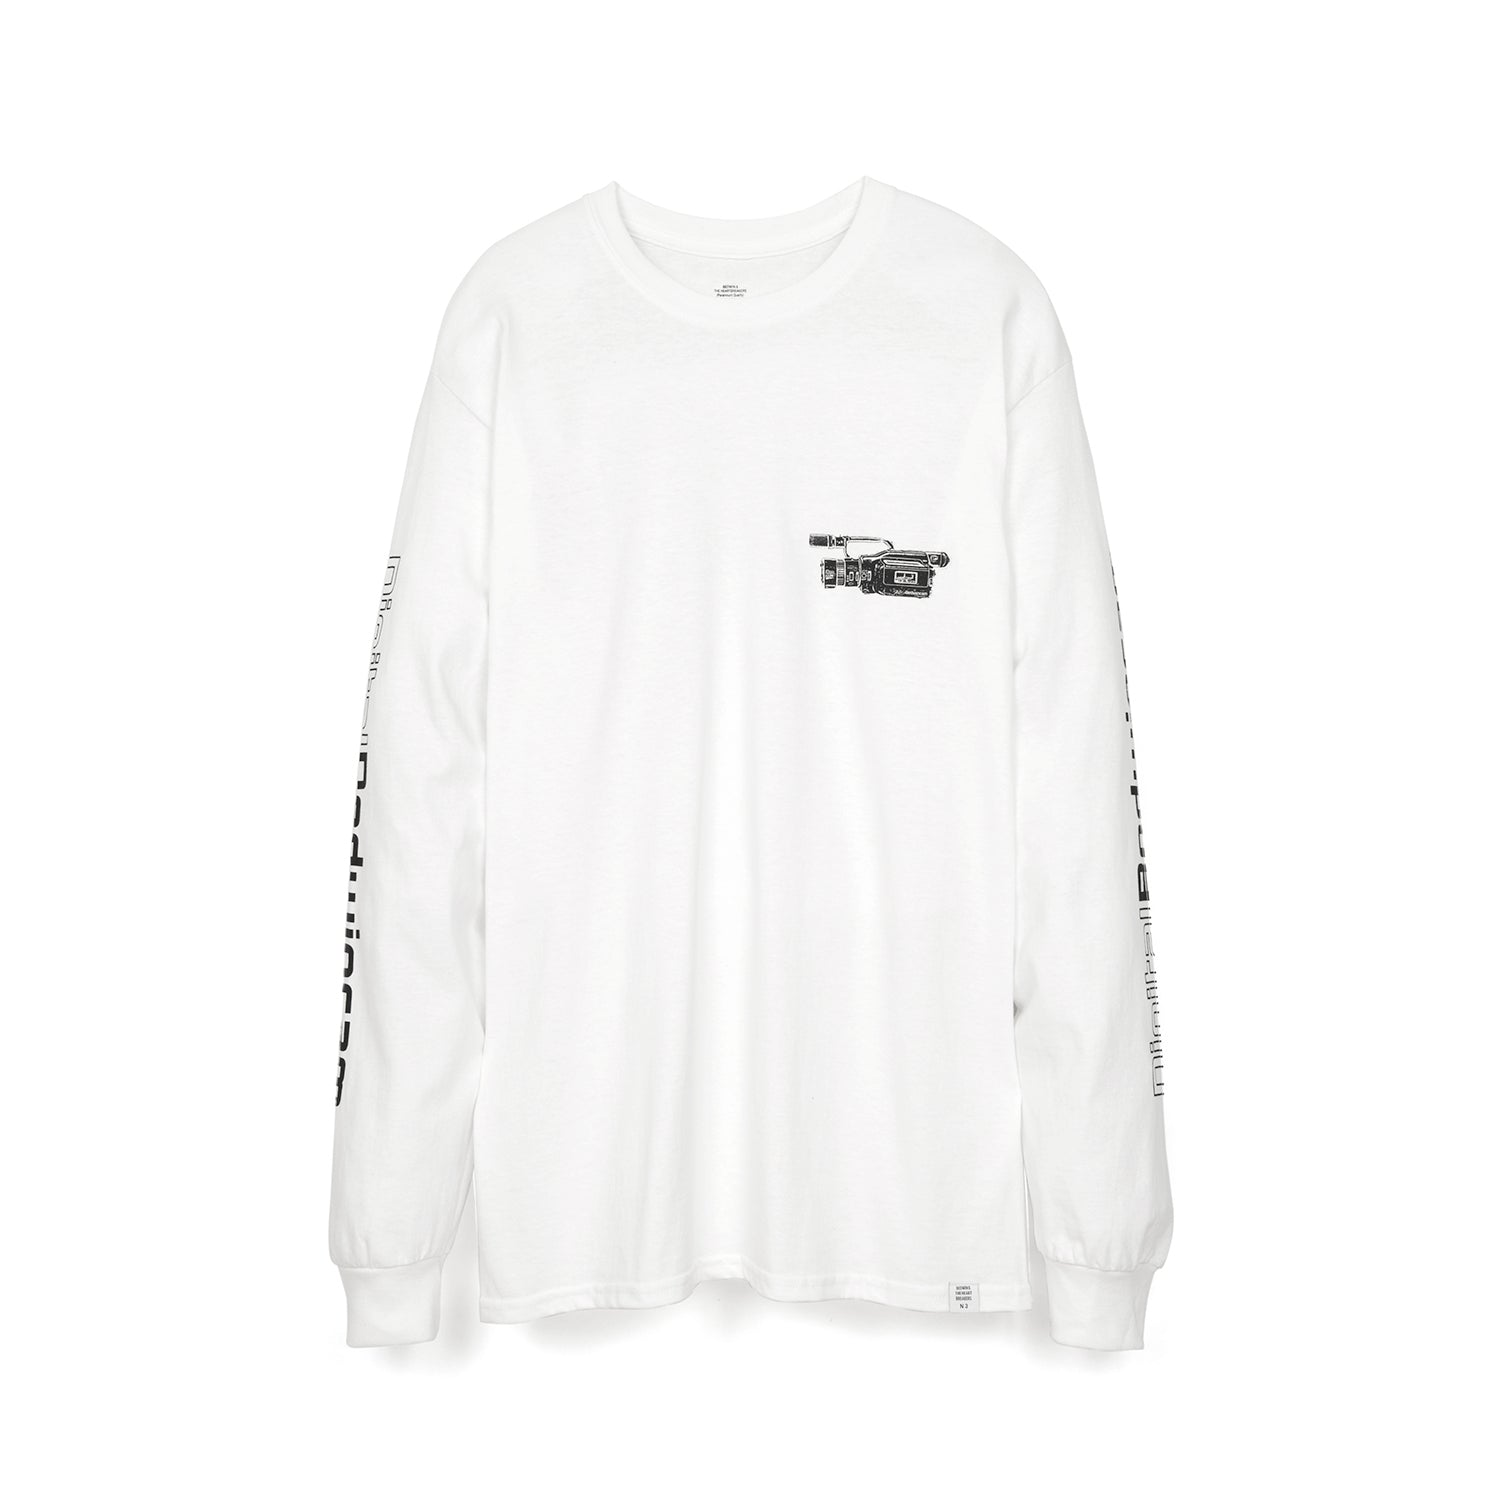 Bedwin 'Keith' L/S Print T-Shirt White/Black